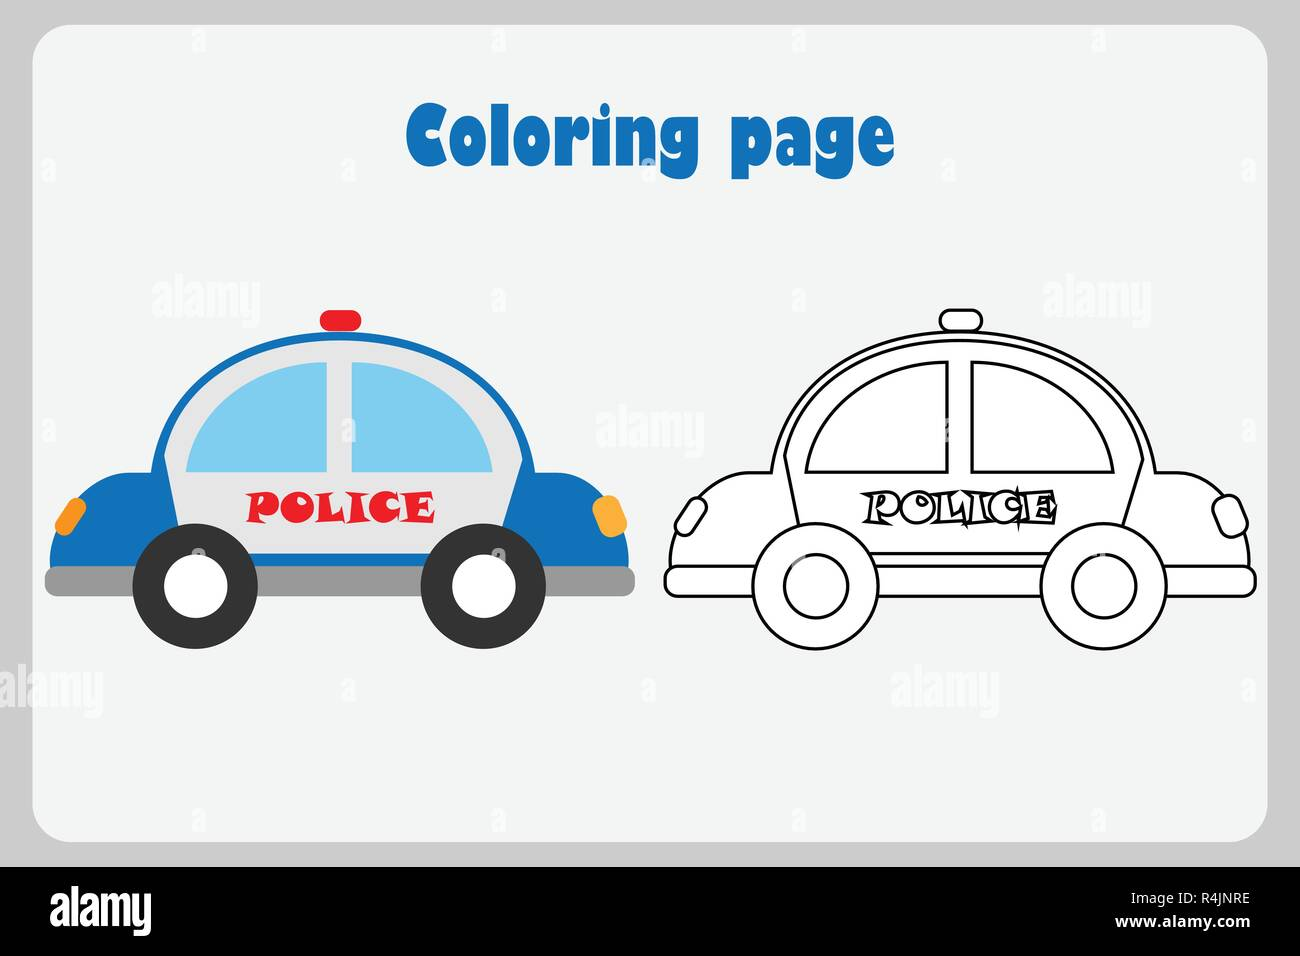 Free Police Building Cliparts, Download Free Clip Art, Free Clip Art on  Clipart Library | 956x1300